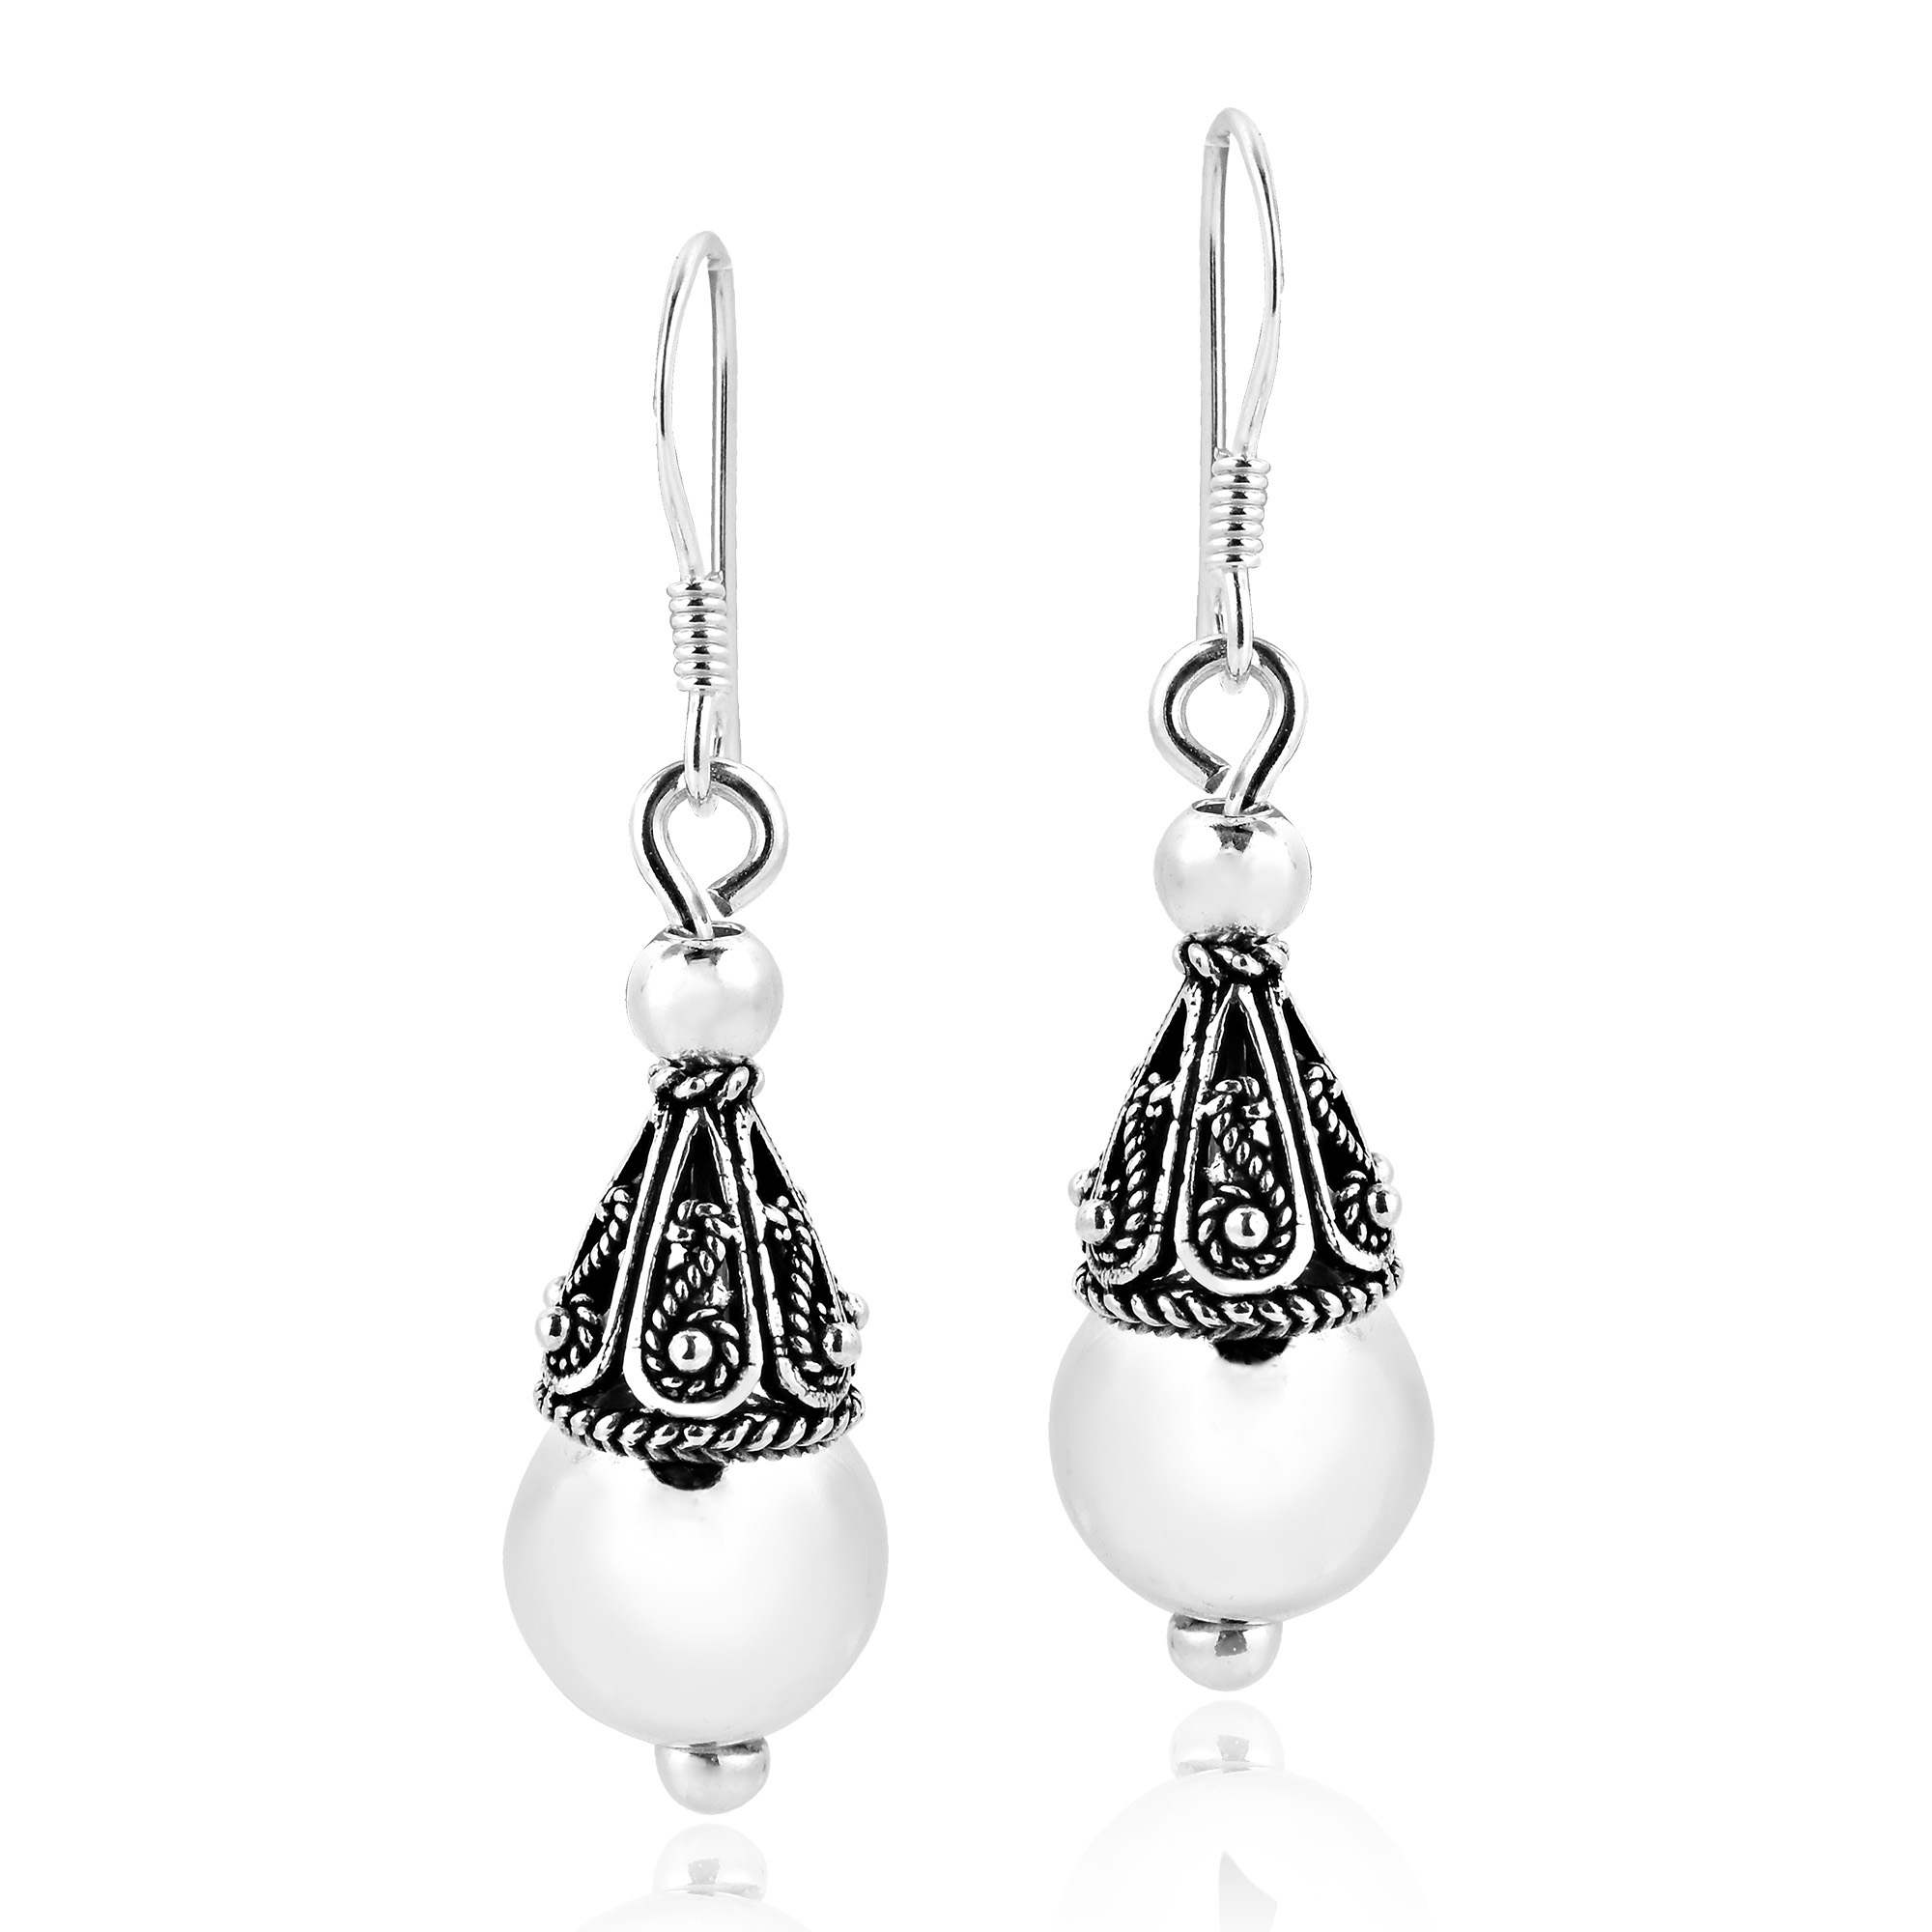 Crafted For Of Nostalgia And Elegant Sophisticated Styles These Filigree Earrings Are Made By Hand From Sterling Silver 925 In The Work